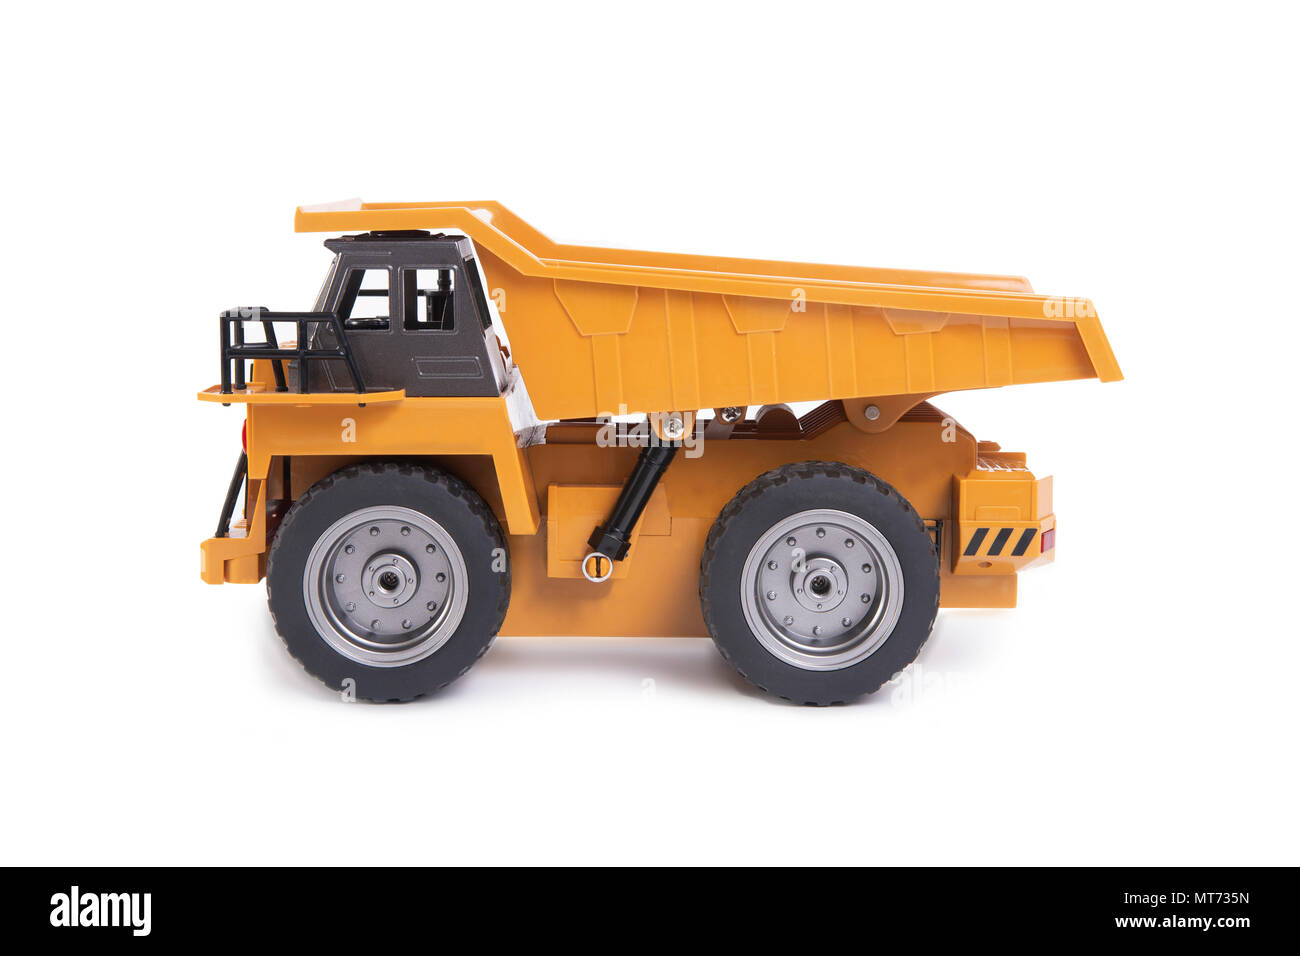 Side view of yellow truck toy model on white background. - Stock Image